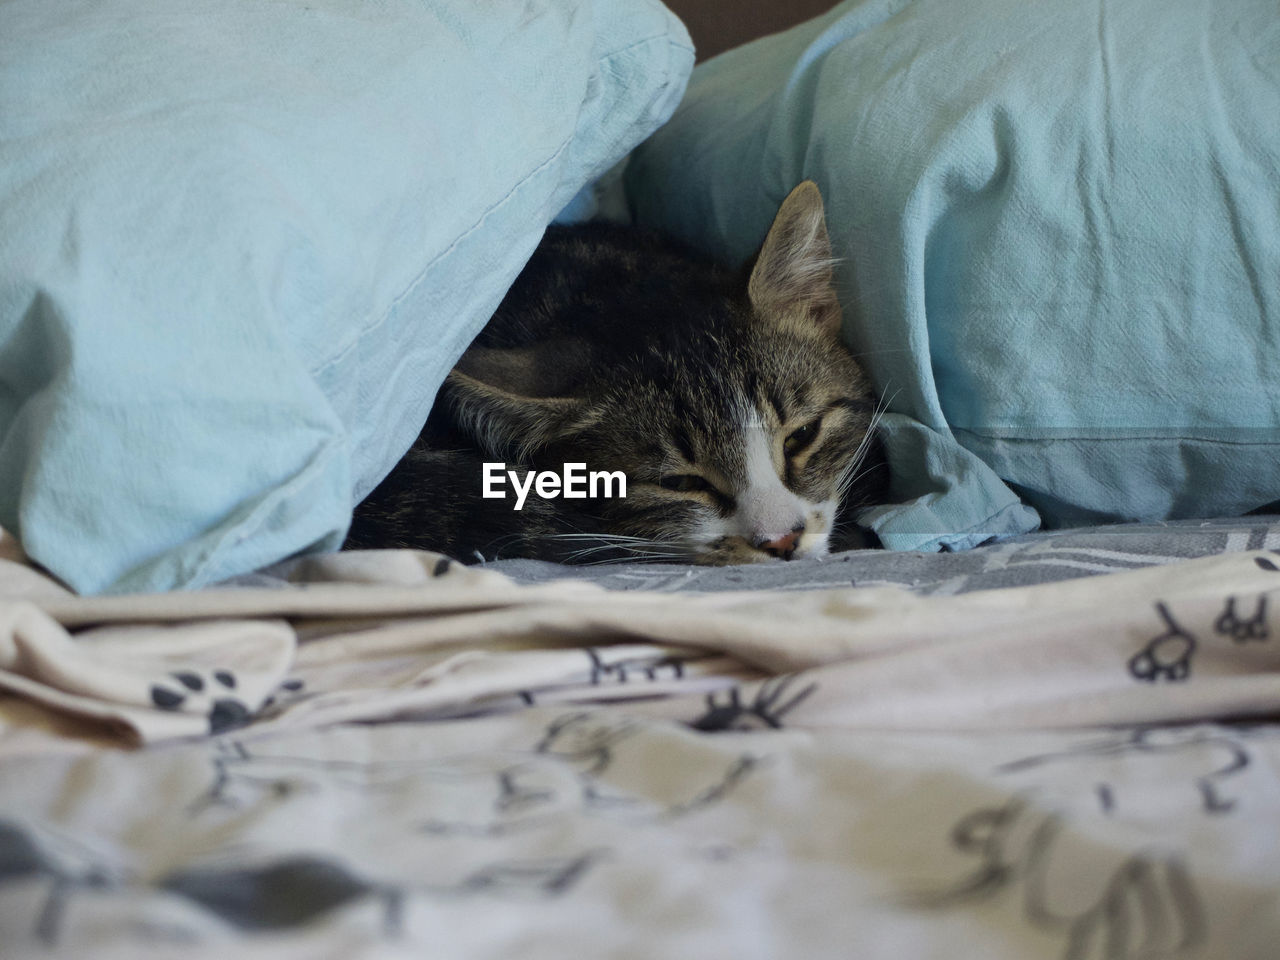 domestic, pets, mammal, domestic animals, domestic cat, animal themes, cat, bed, animal, vertebrate, feline, relaxation, one animal, furniture, indoors, sleeping, sheet, bedroom, home interior, textile, no people, whisker, duvet